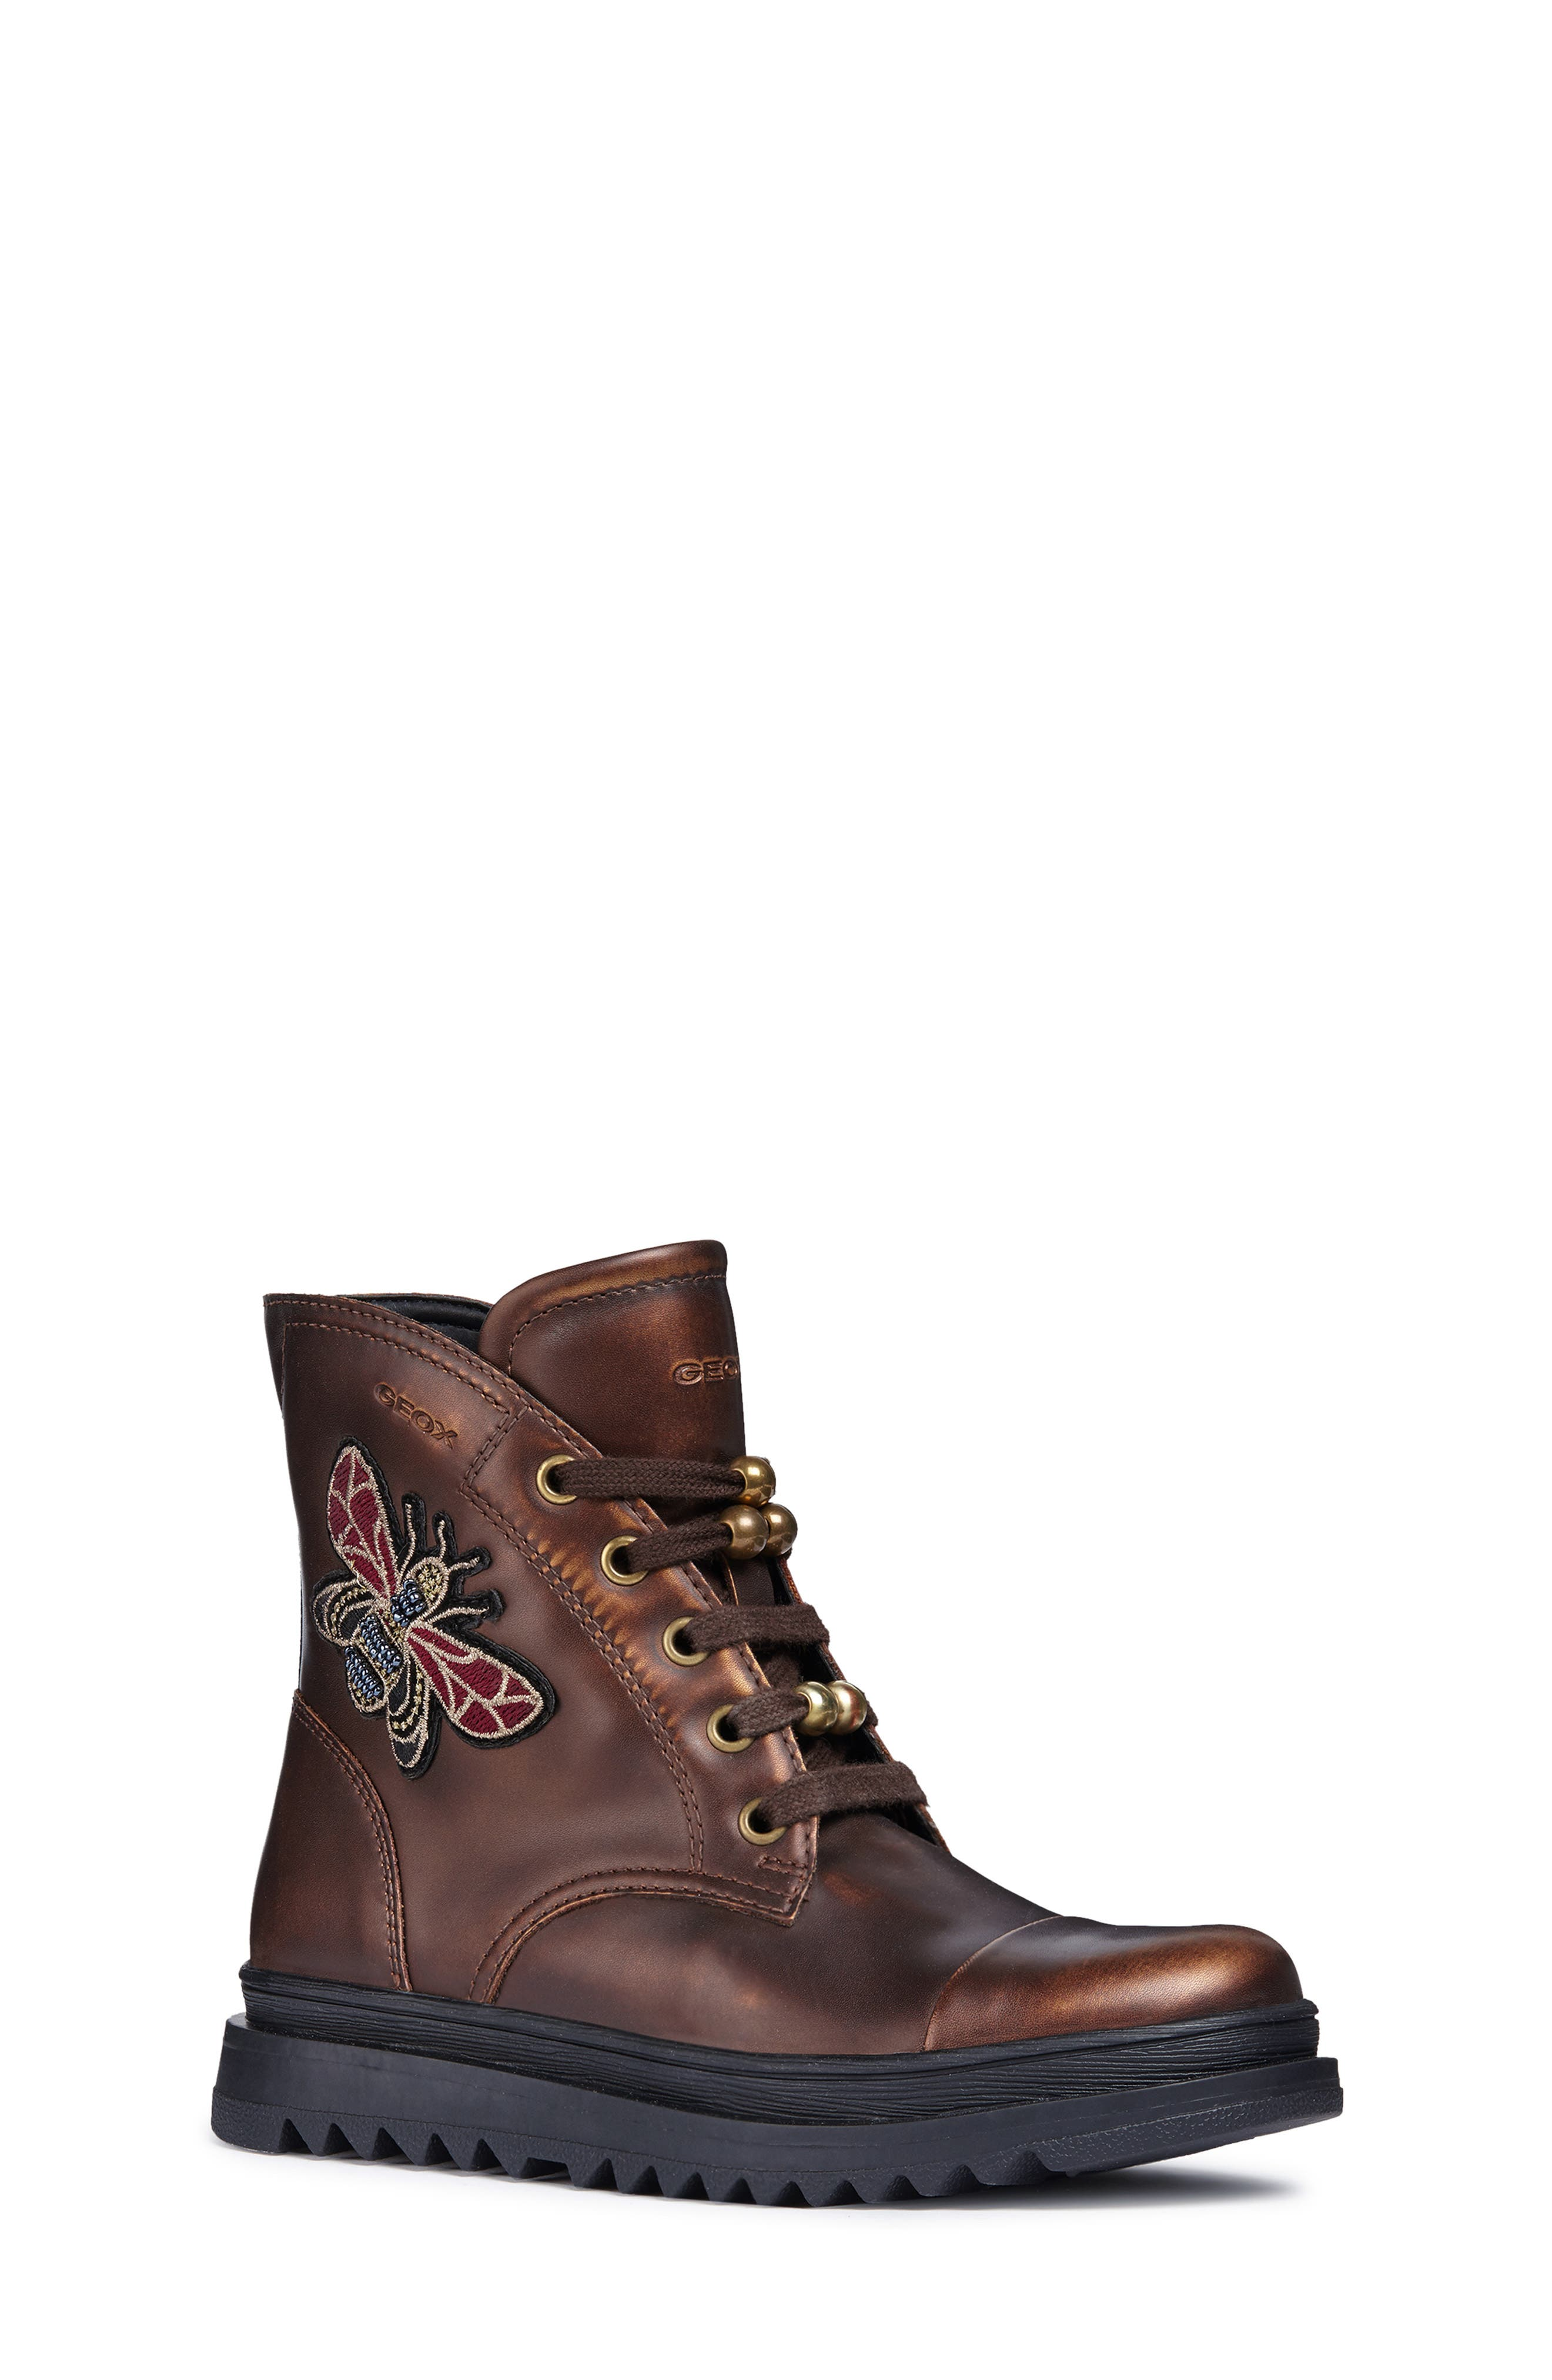 Gilly Jaw 2 Lace-Up Boot,                             Main thumbnail 1, color,                             BRONZE